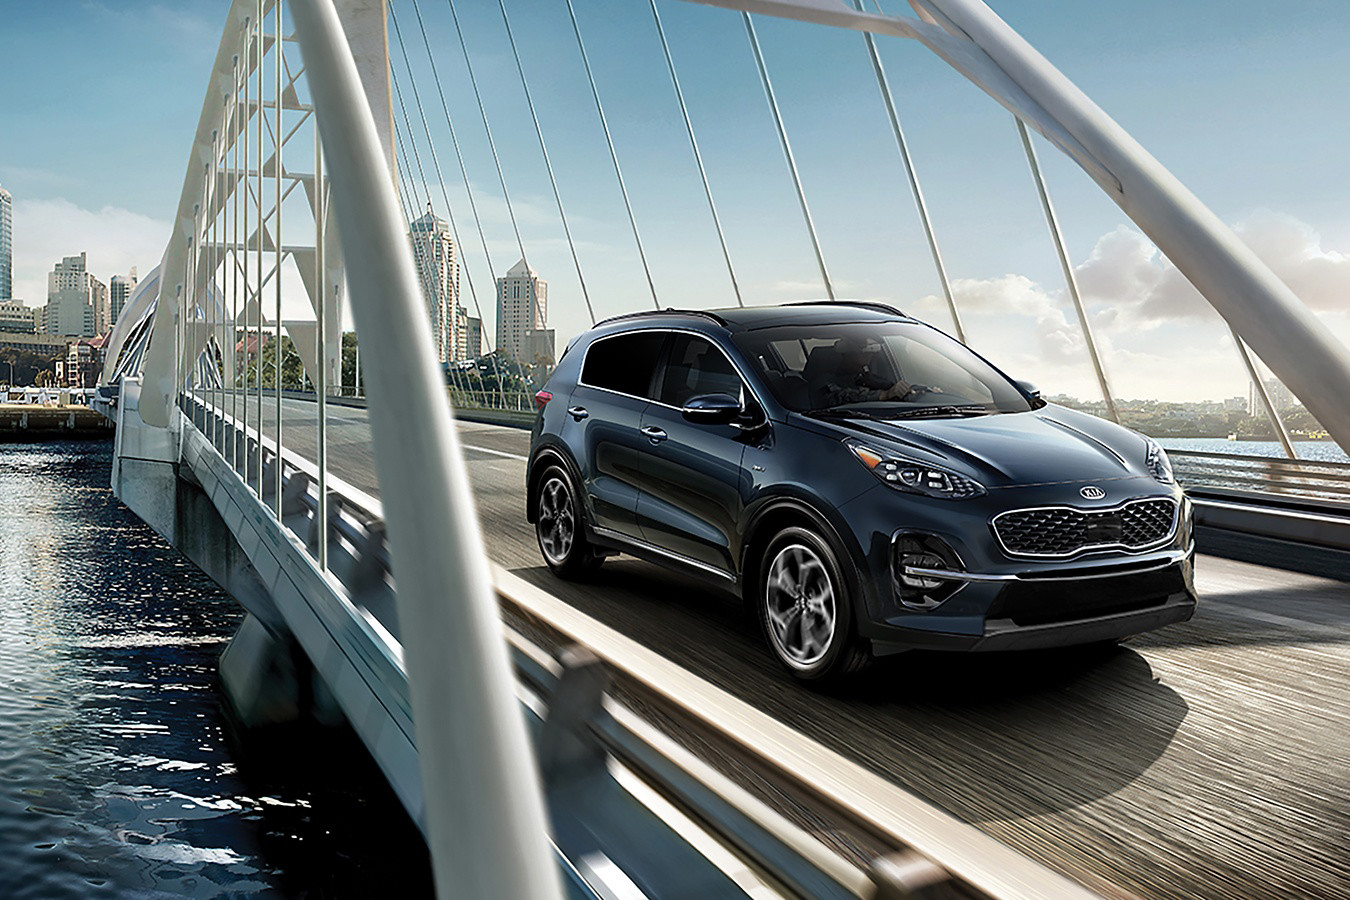 2020 Kia Sportage Key Features in Rockford, IL